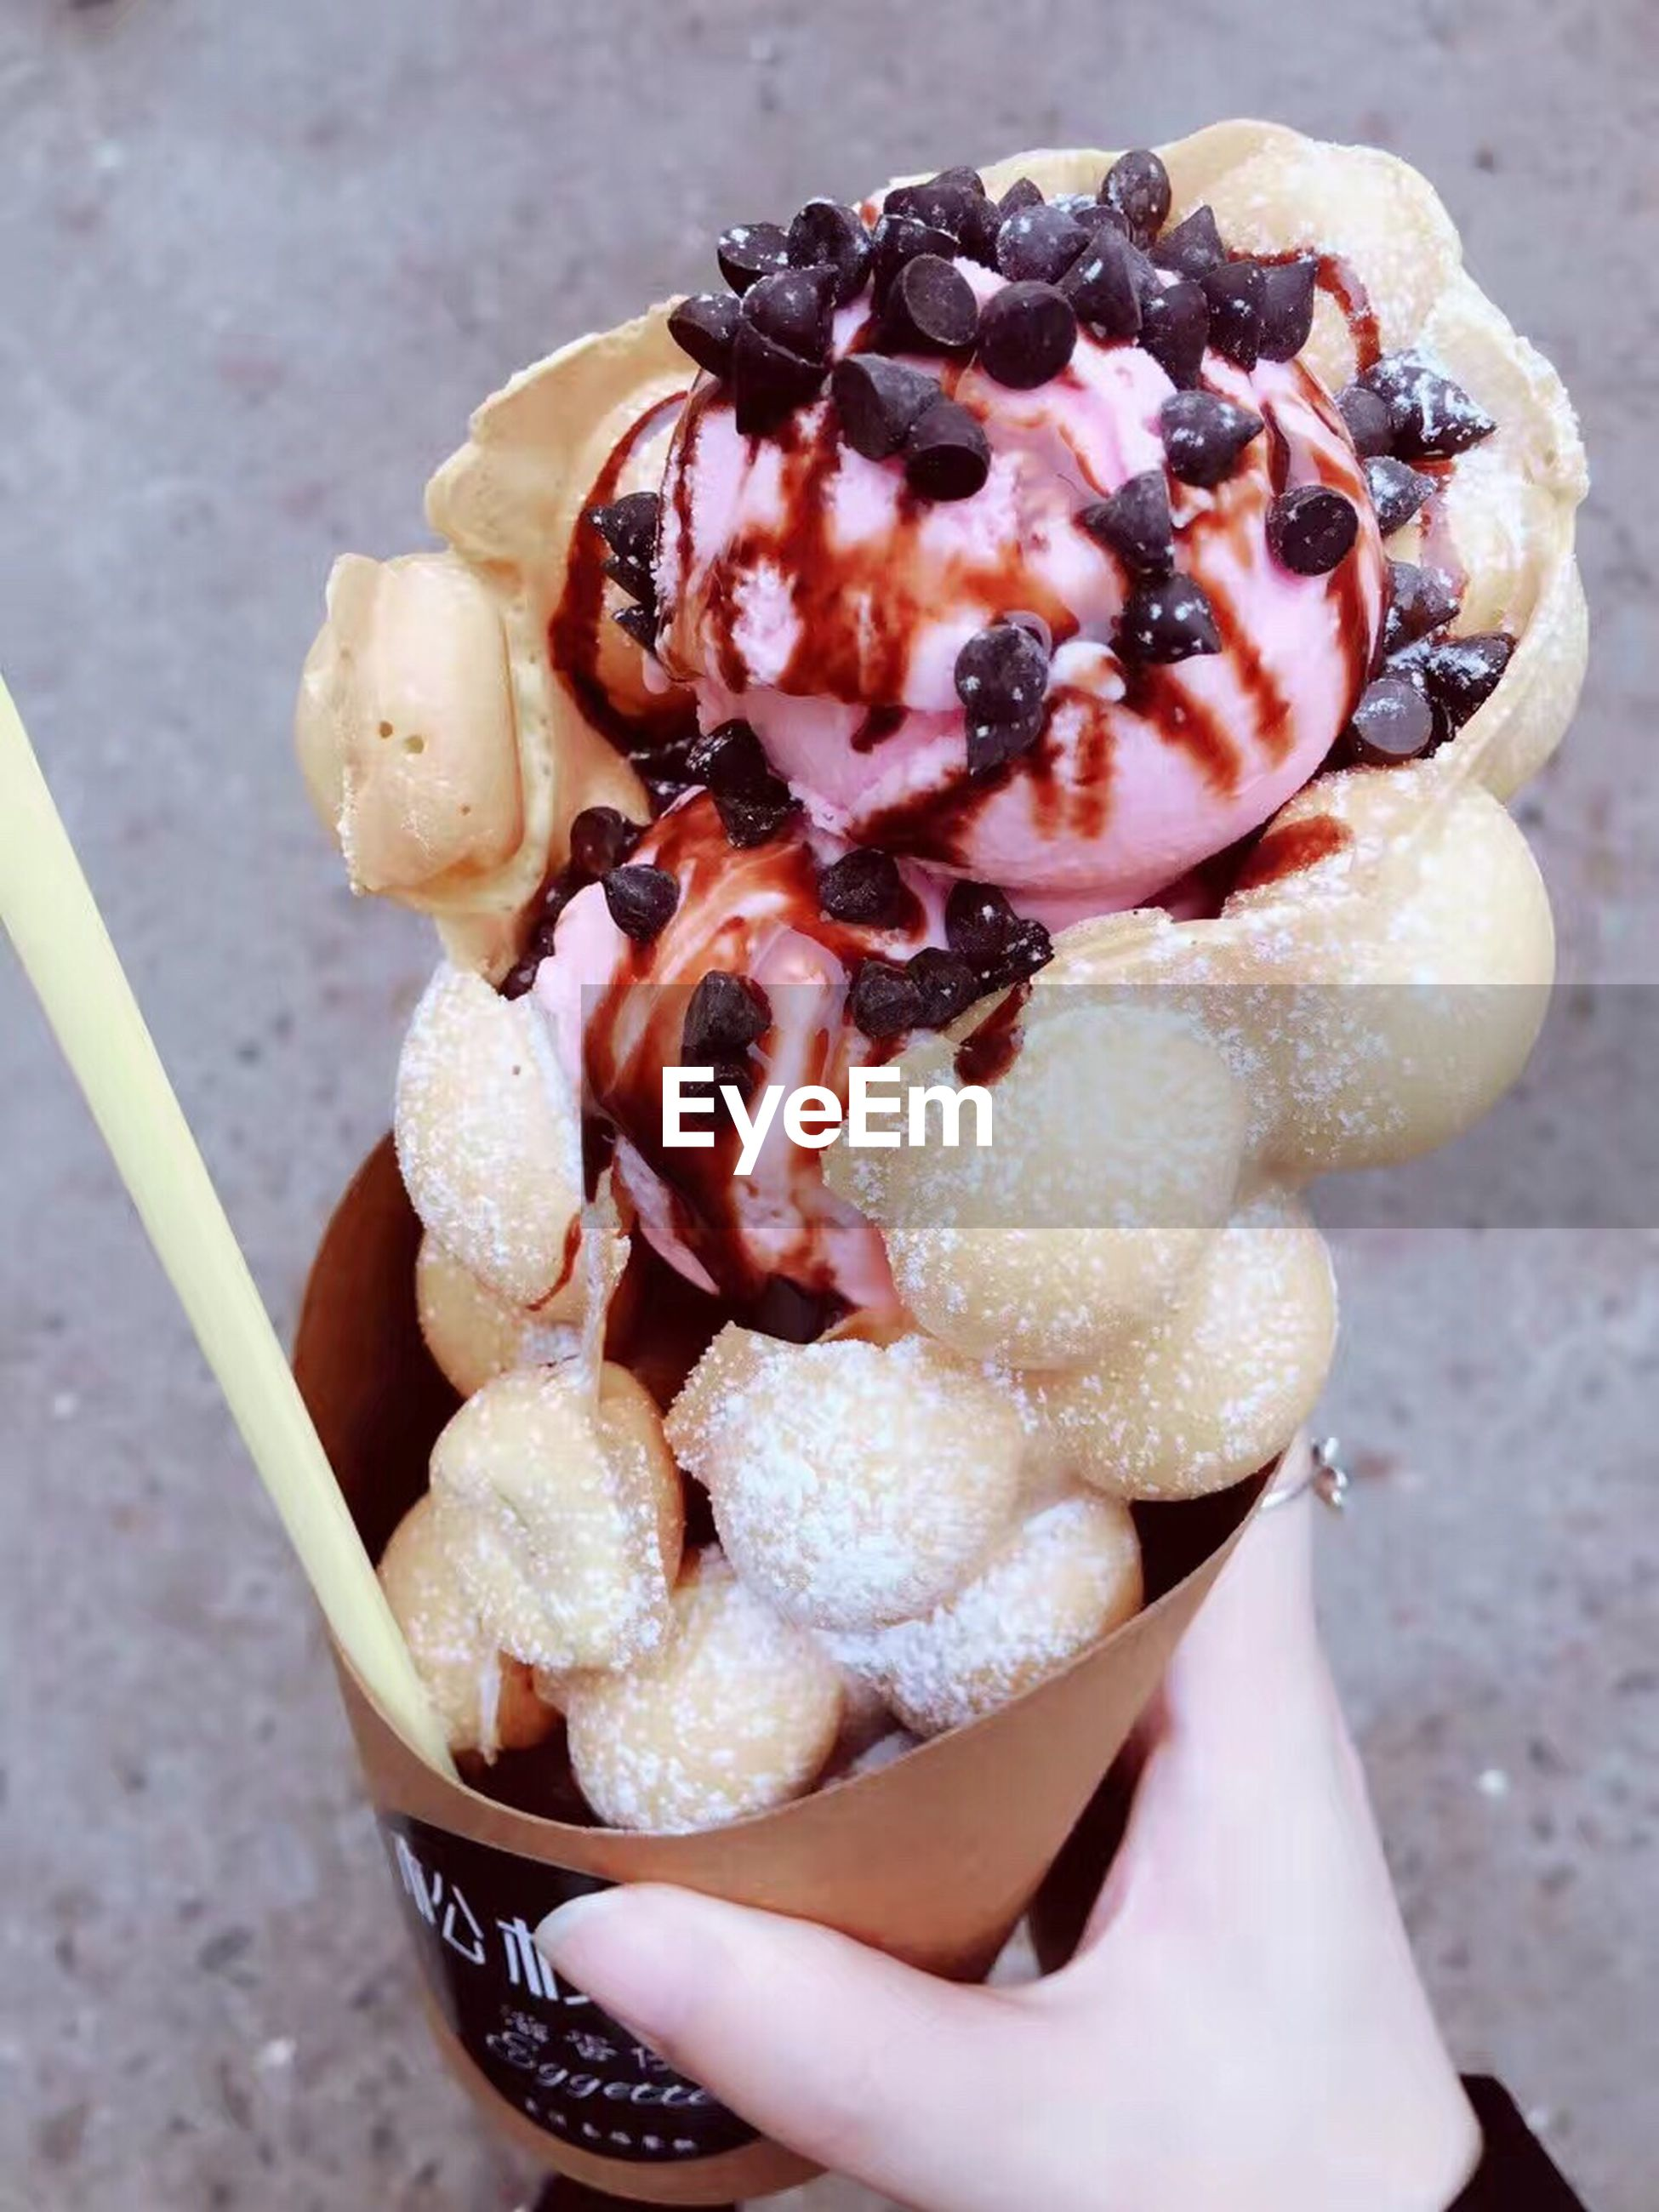 frozen food, sweet food, ice cream, food and drink, indulgence, ice cream cone, close-up, dessert, temptation, food, freshness, no people, ready-to-eat, day, outdoors, ice cream sundae